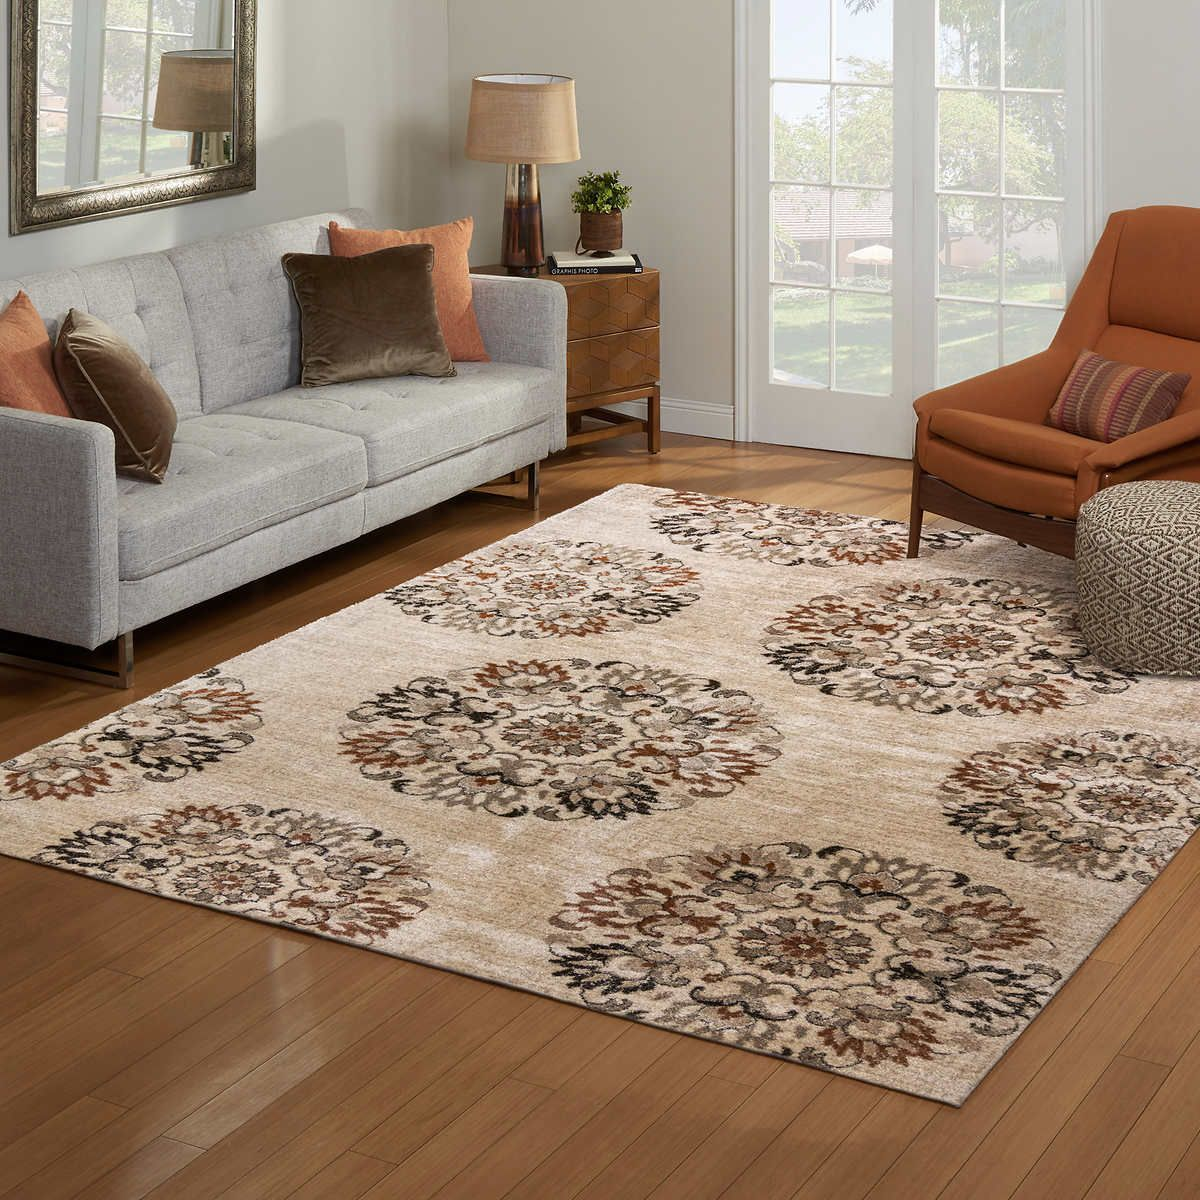 Bari Rug Collection Chantel Beige In 2020 Rugs